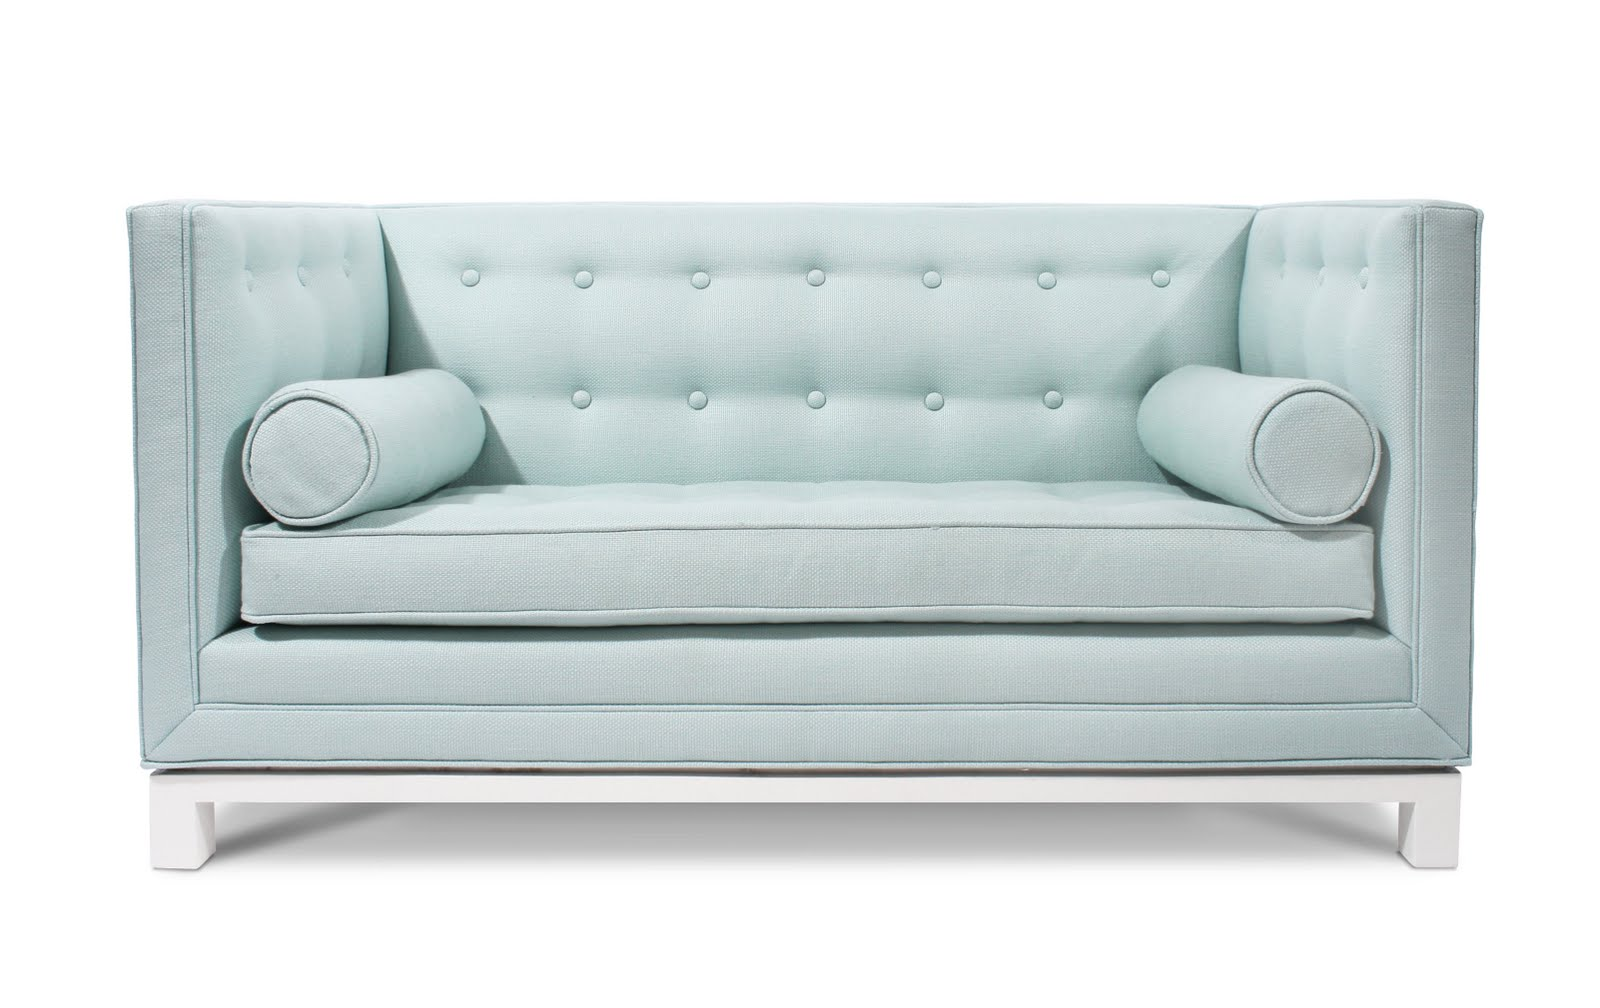 Light Blue Couch : STYLEBEAT: THE KIDS ARE ALRIGHT, THEY GET MINI MOD FURNITURE